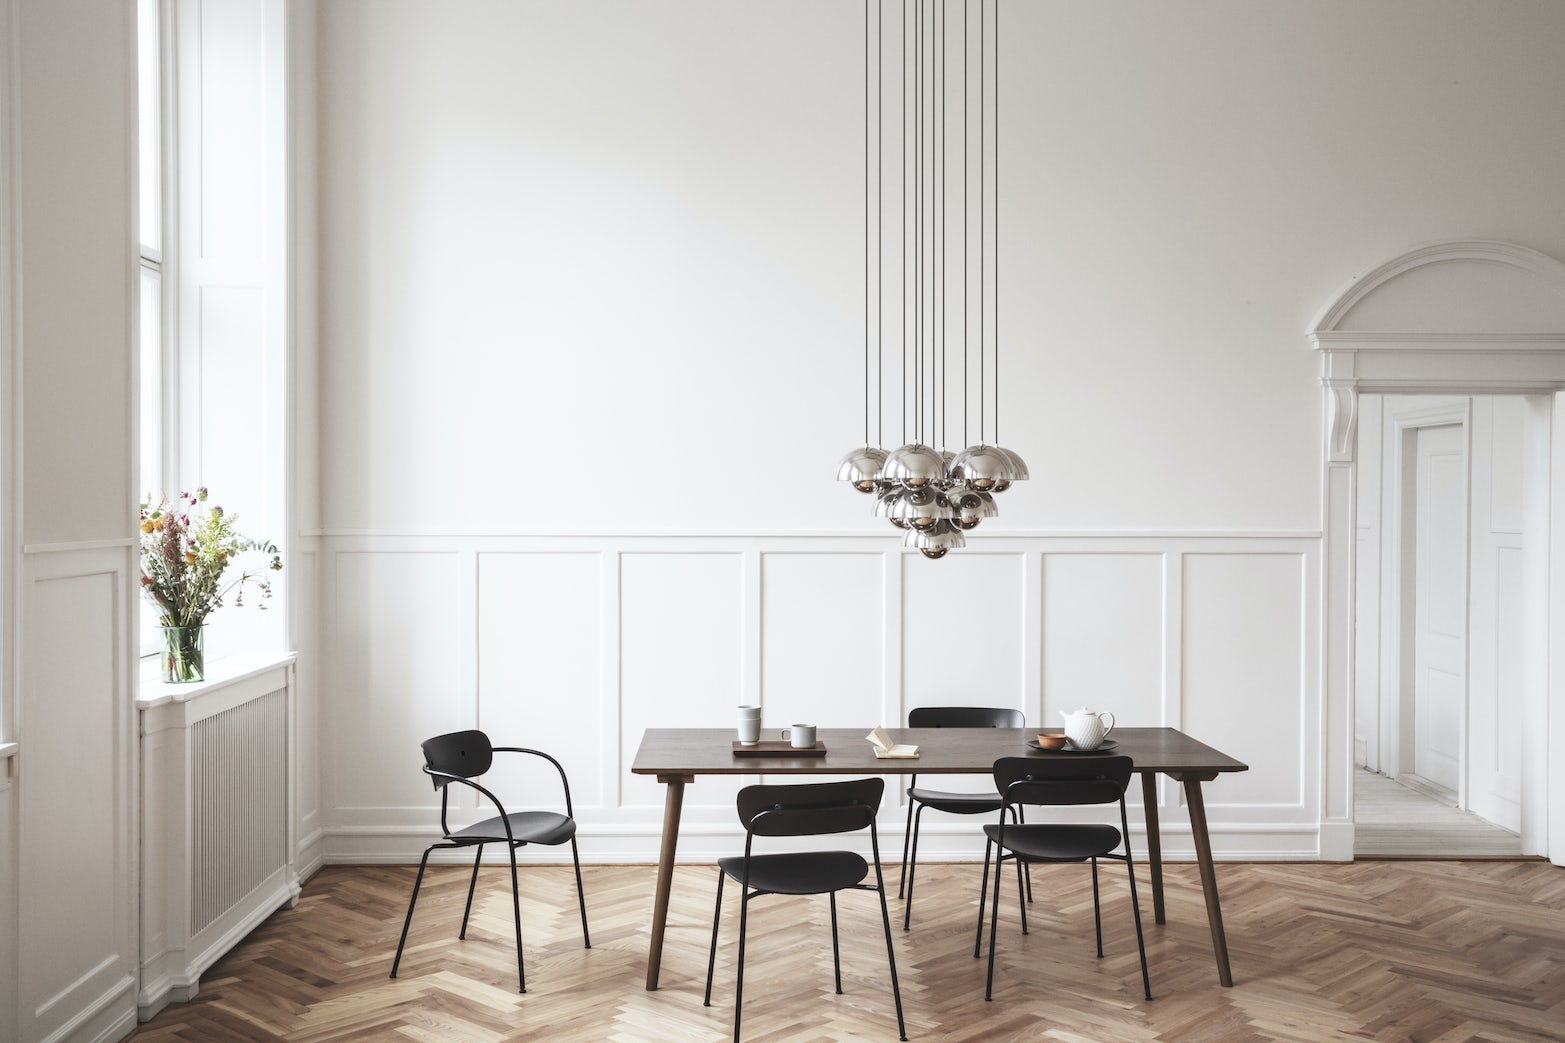 Pavilion armchair av2 anderssen and voll andtradition 5